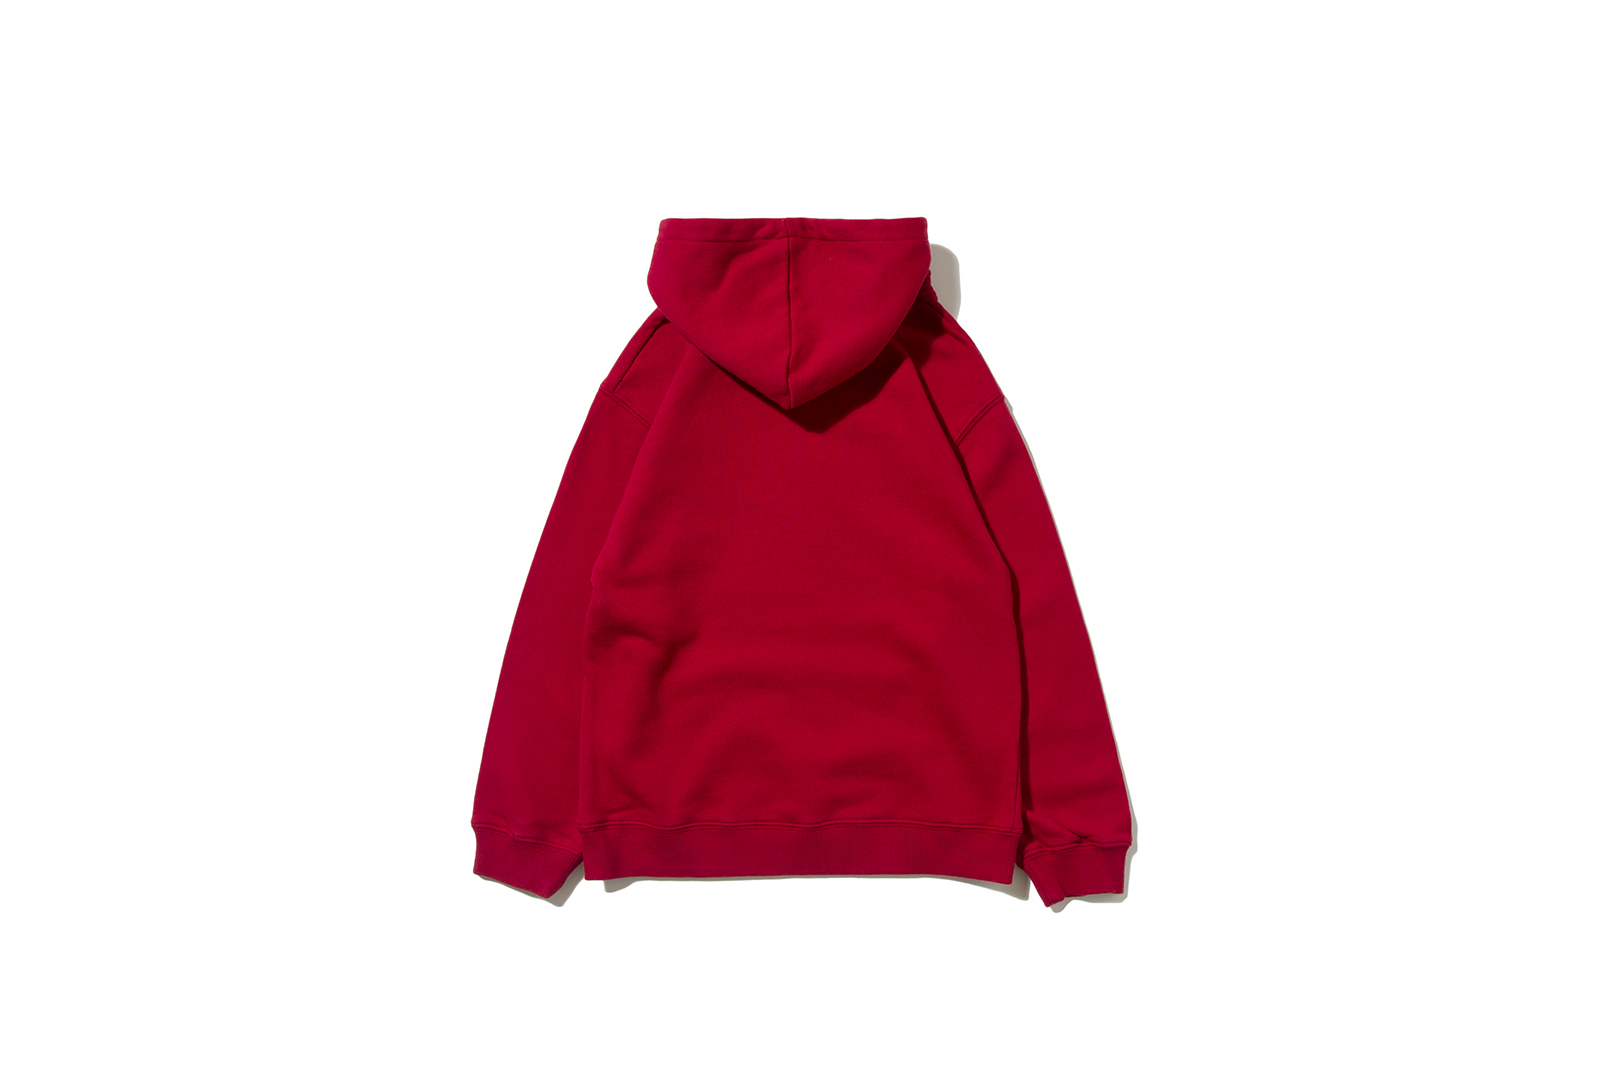 spirit-hoody-ii-kids-red_p1